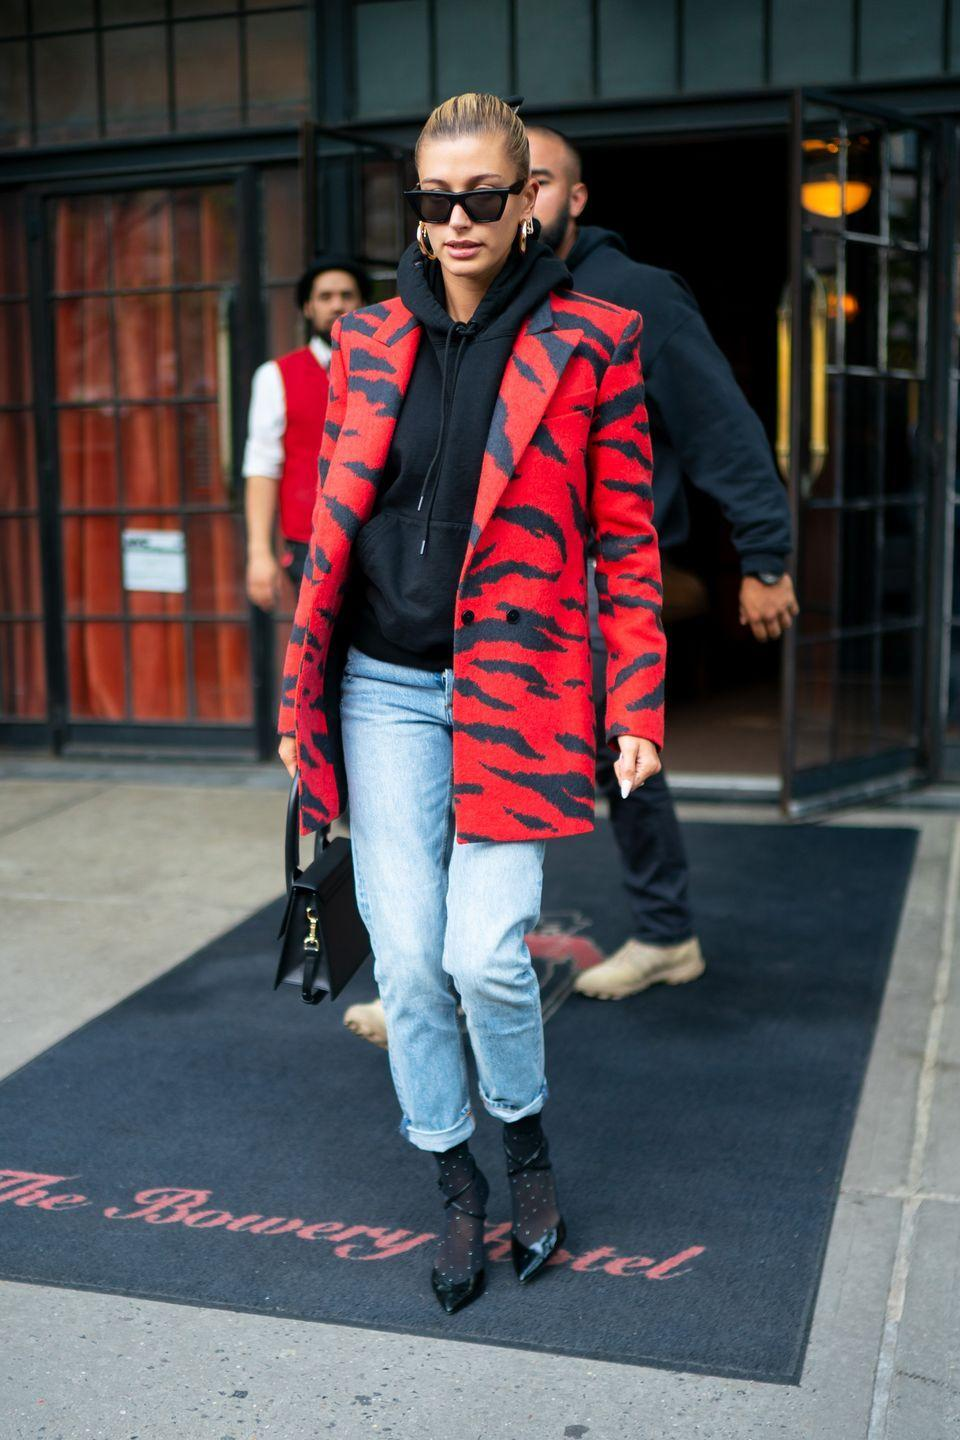 <p>Throwing a blazer over a sweatshirt transforms a comfy classic to a crazy chic outfit. Paired with jeans, boots, and a pulled-back bun – your casual fit just got a whole lot cooler.<br><br></p>